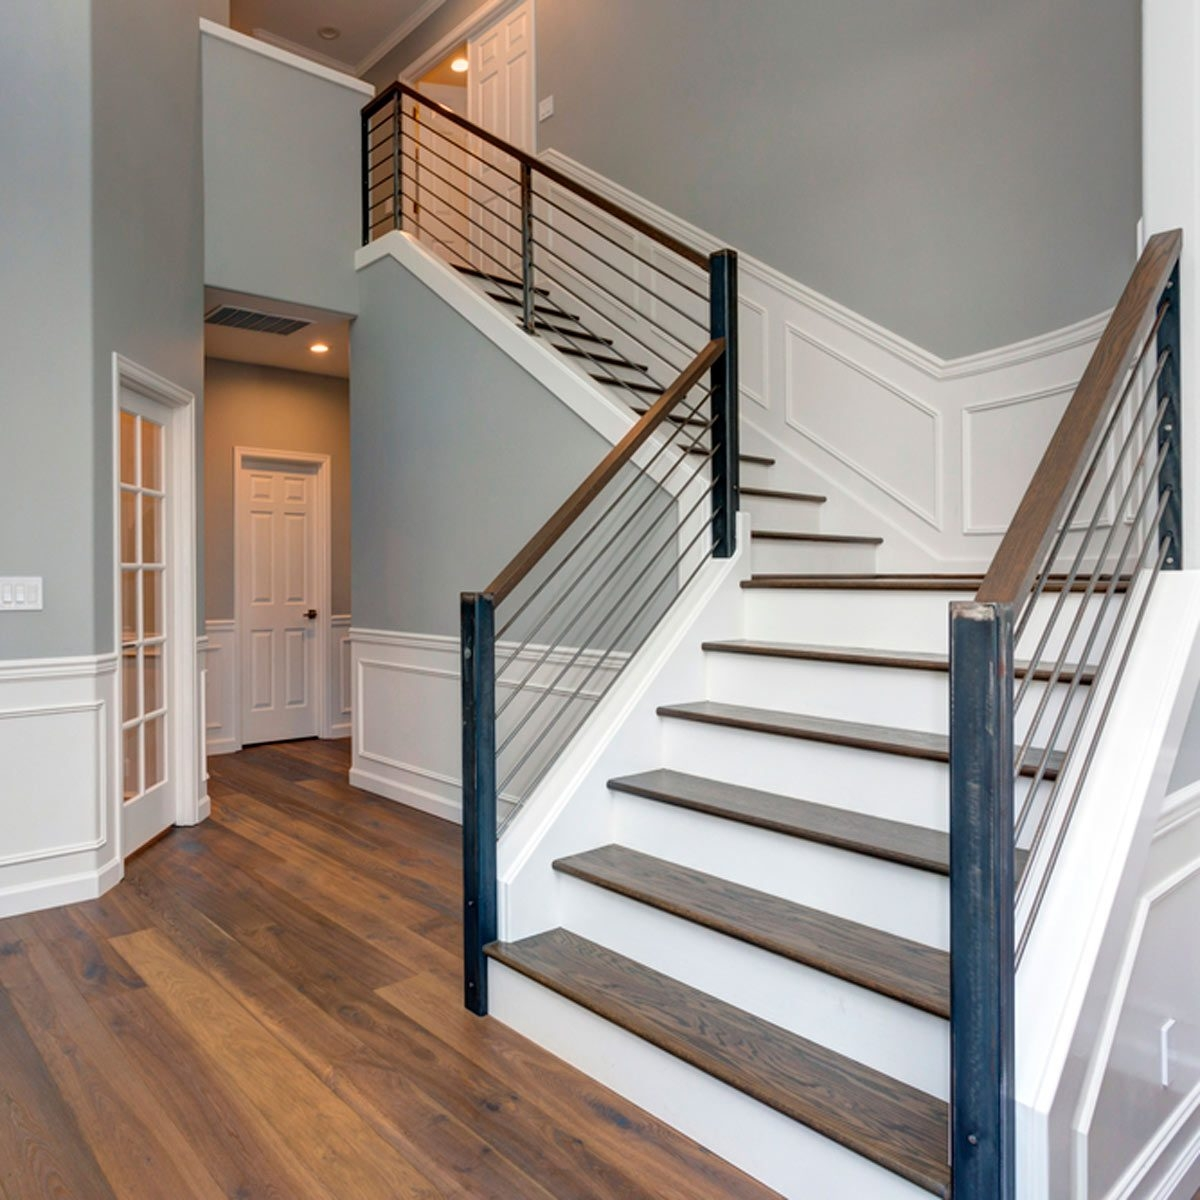 10 Ways To Freshen Up Outdated Banisters Family Handyman | Black Horizontal Stair Railing | Metal | Linear | Interior | Wood | Exterior